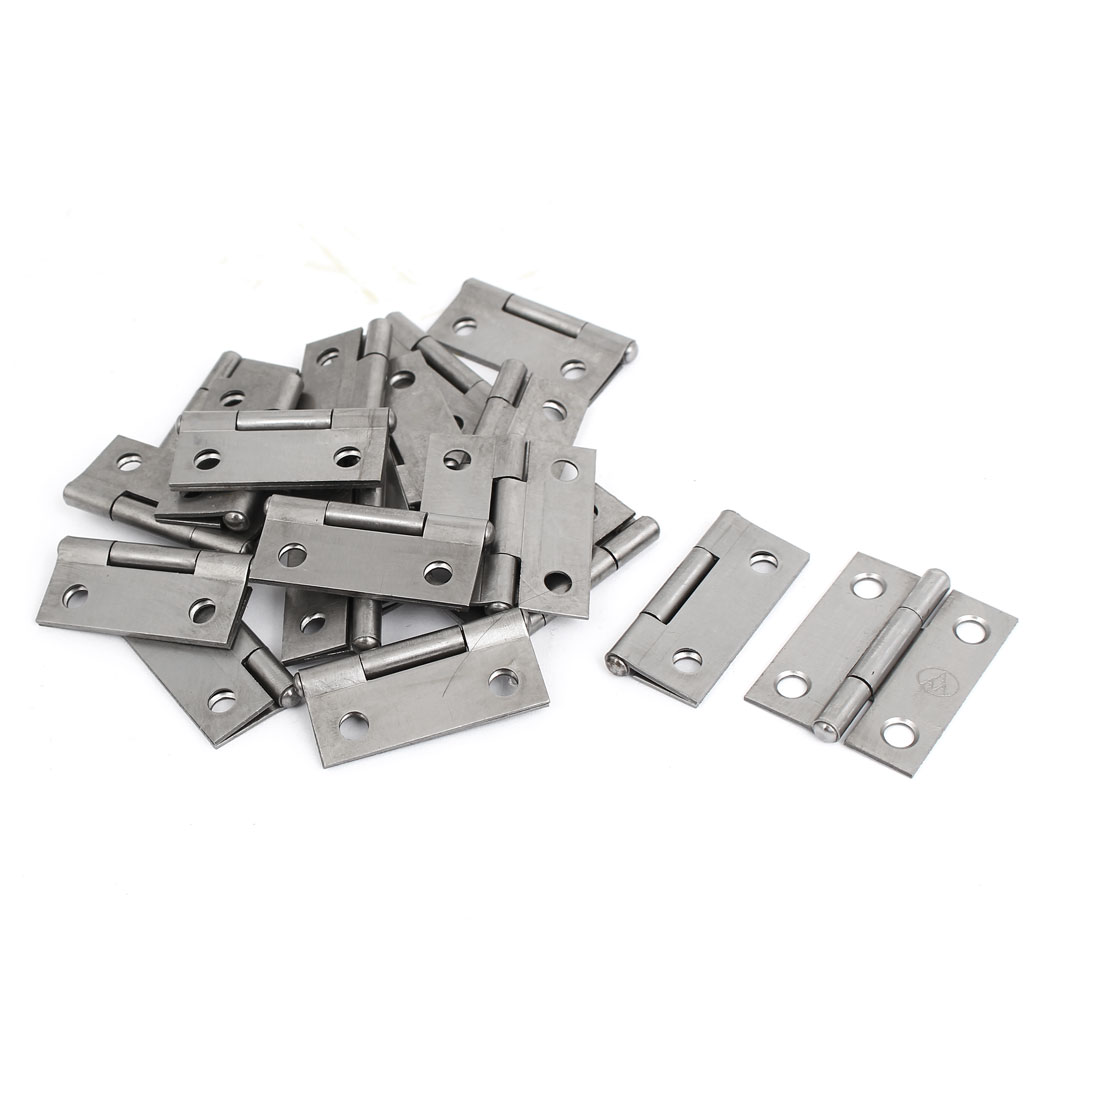 "Cupboard Showcase Door Toolbox Iron Butt Hinge Silver Gray 1.5"" Long 20pcs"